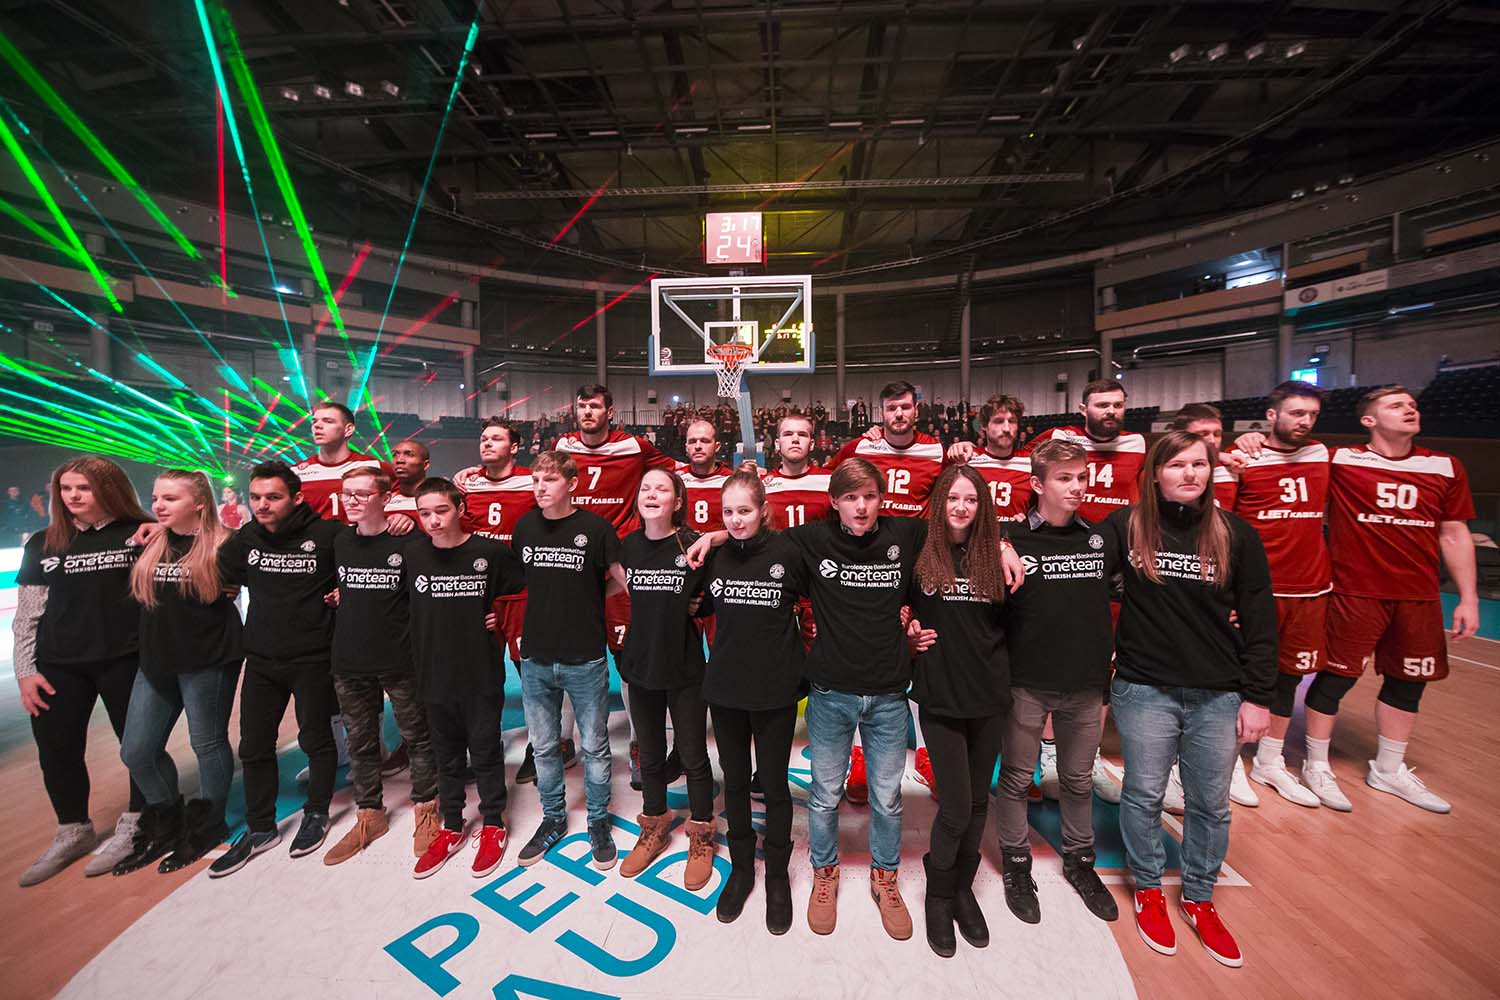 One Team, 2017-18 finalists